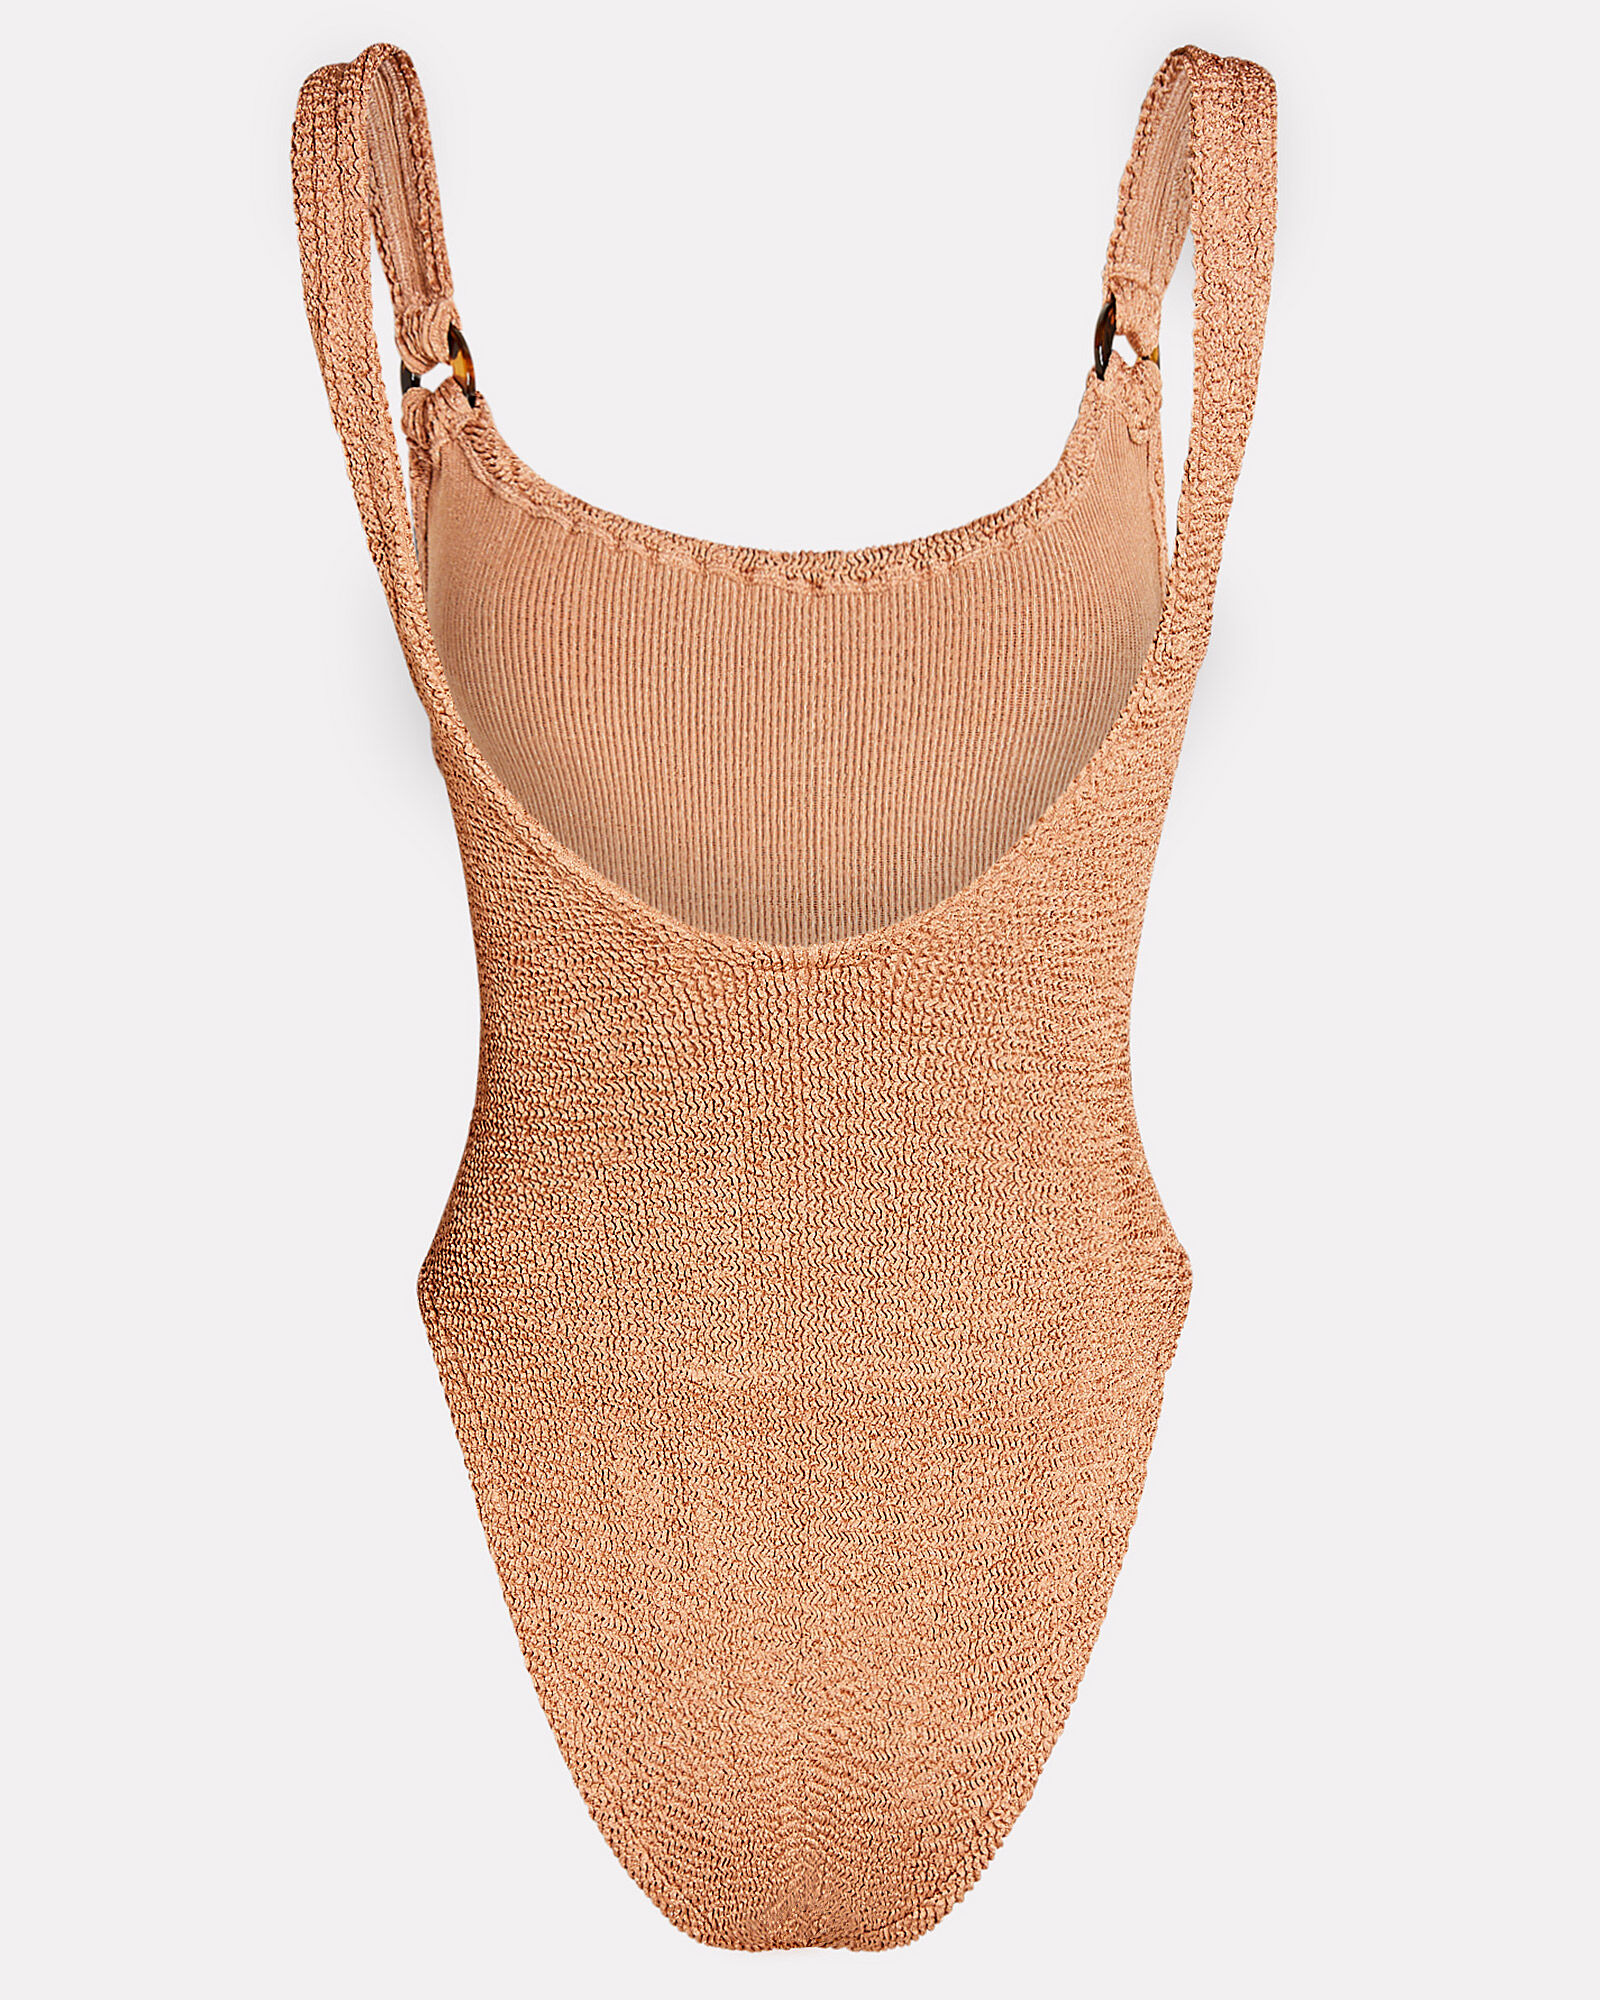 Domino One-Piece Swimsuit, BROWN, hi-res